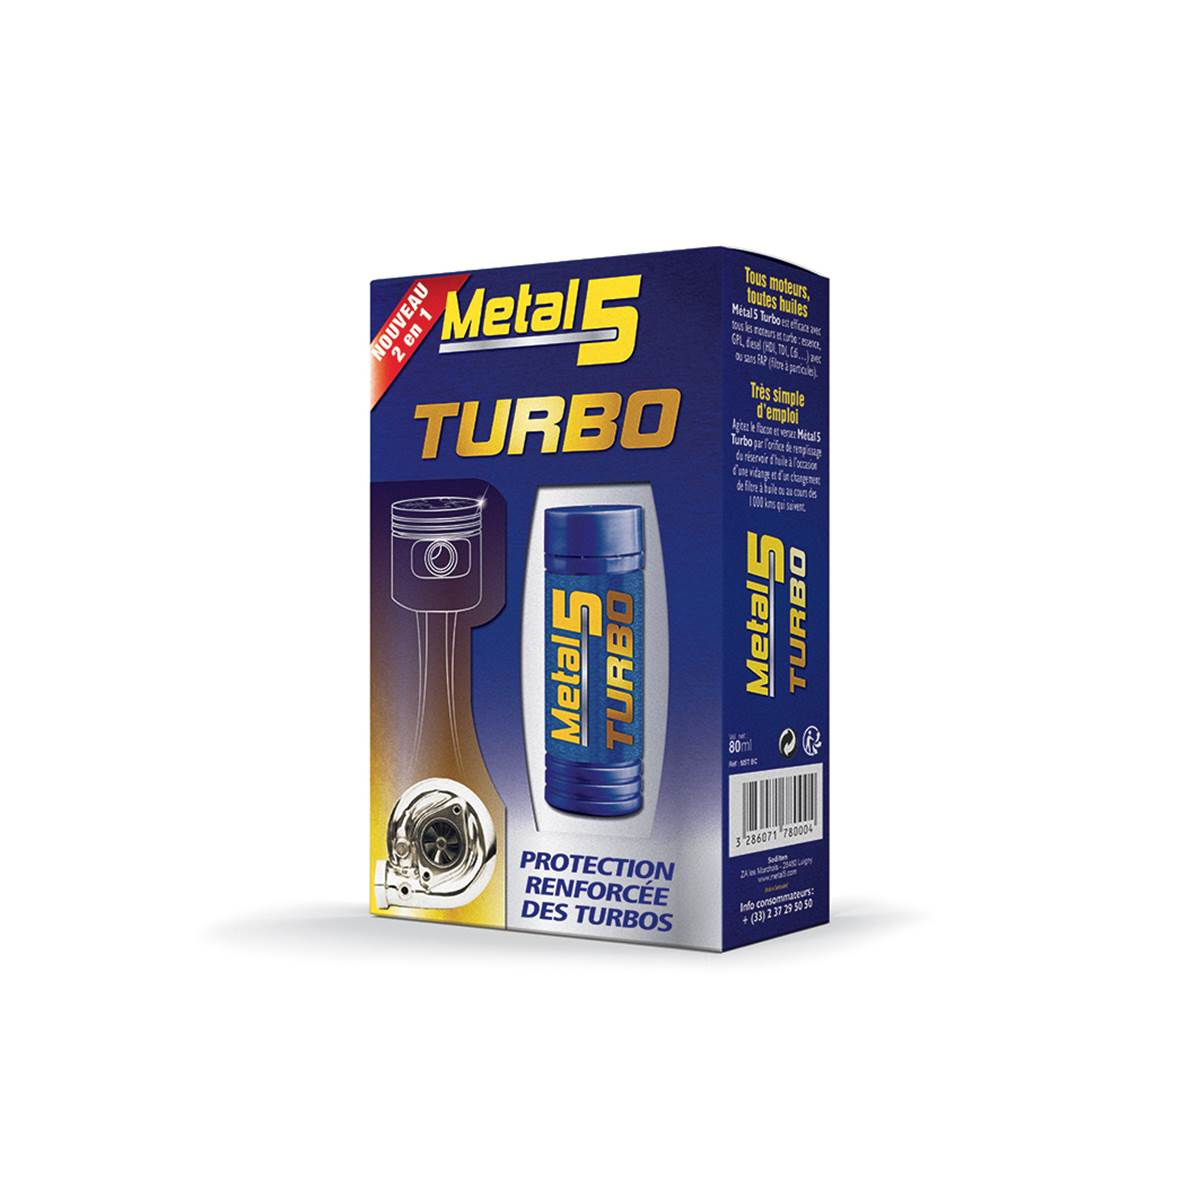 METAL 5 Turbo 80ml